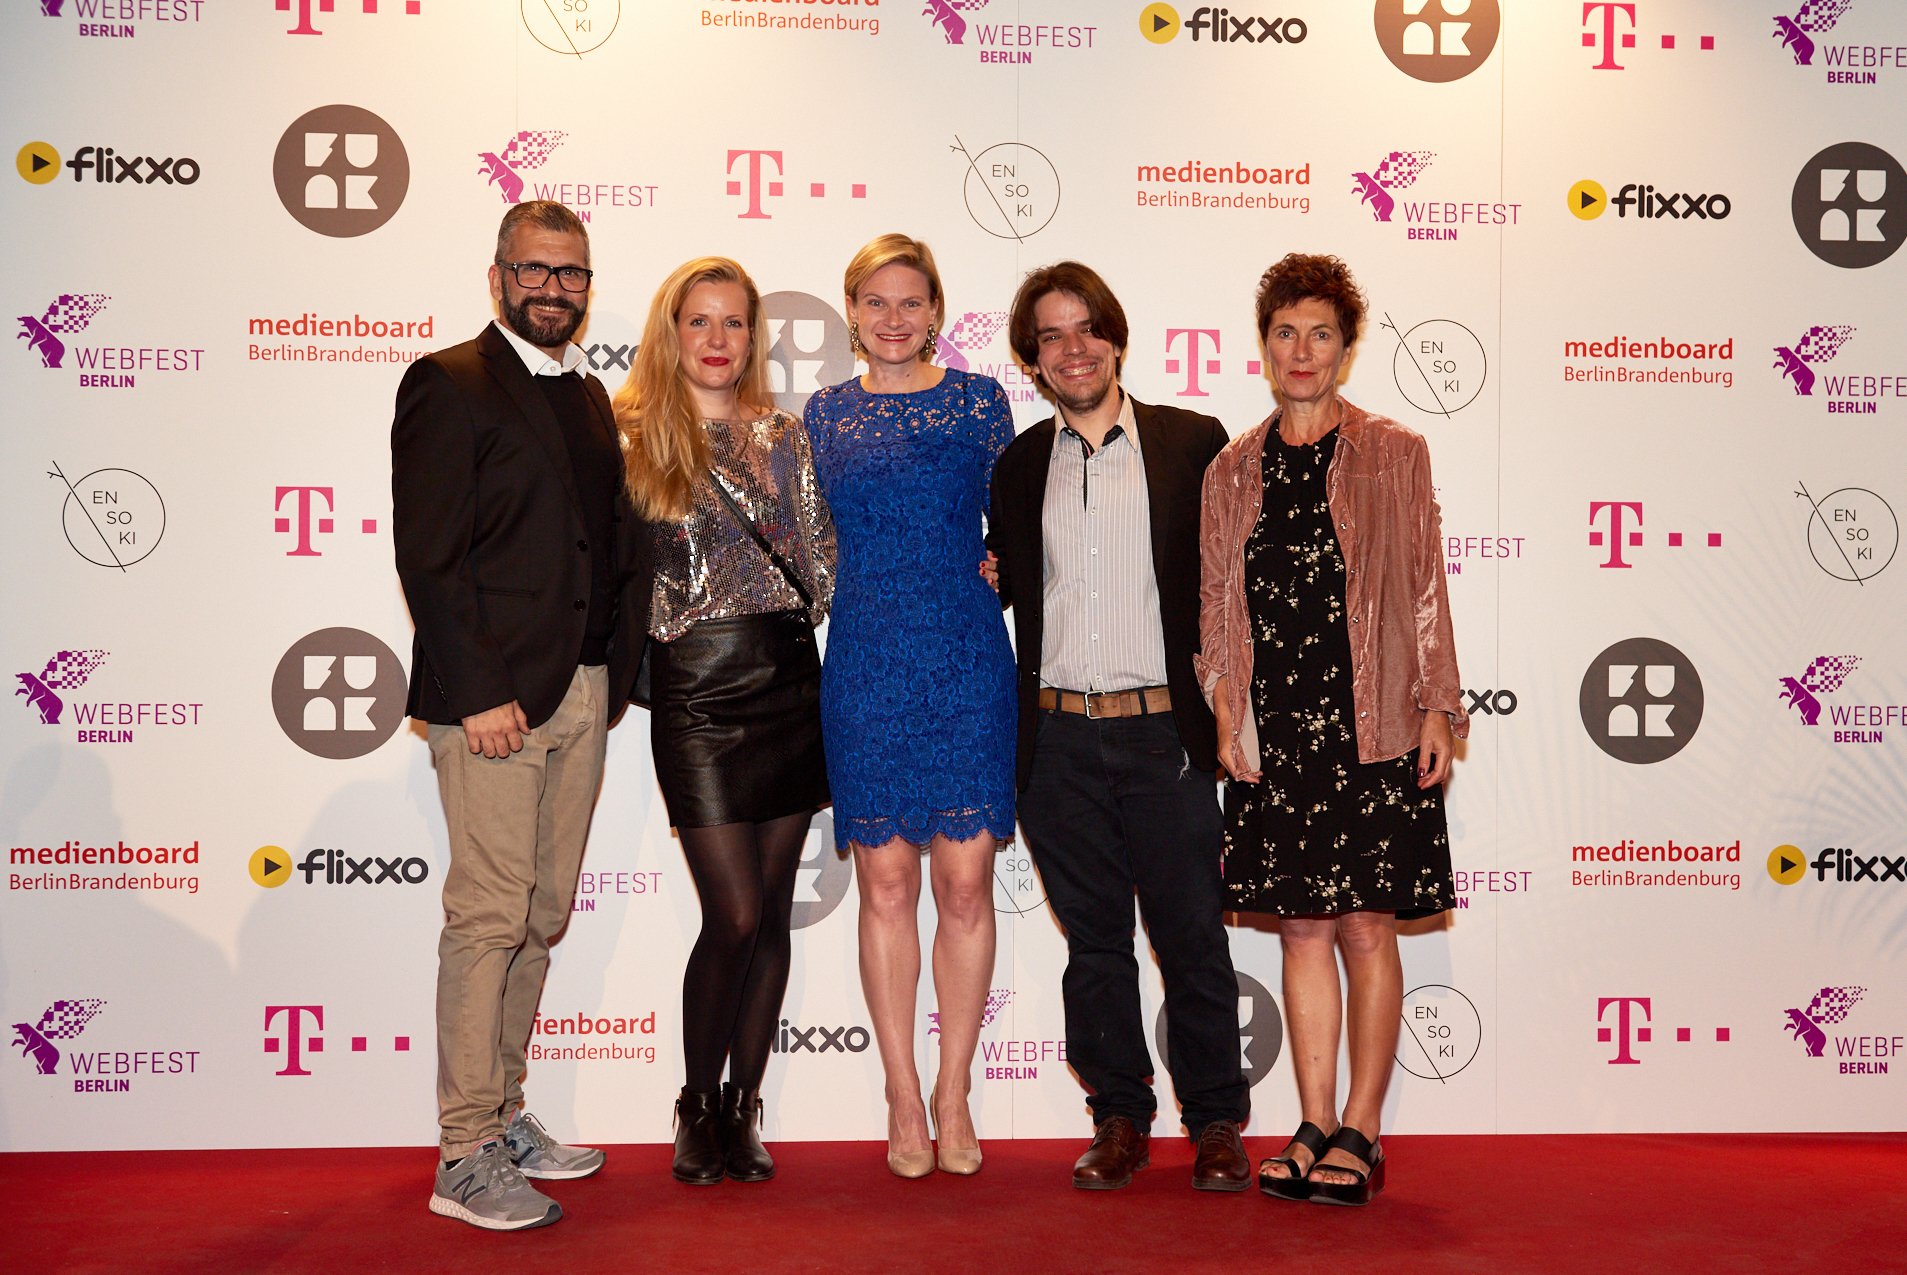 2018 Jury (L to R) - Tac Romey (PhantomFilm), Louisa Scheel (Webedia), Meredith Burkholder (Webfest Berlin CEO), Leandro Silva (Rio Web Fest), Claire Leproust (FabLabChannel)